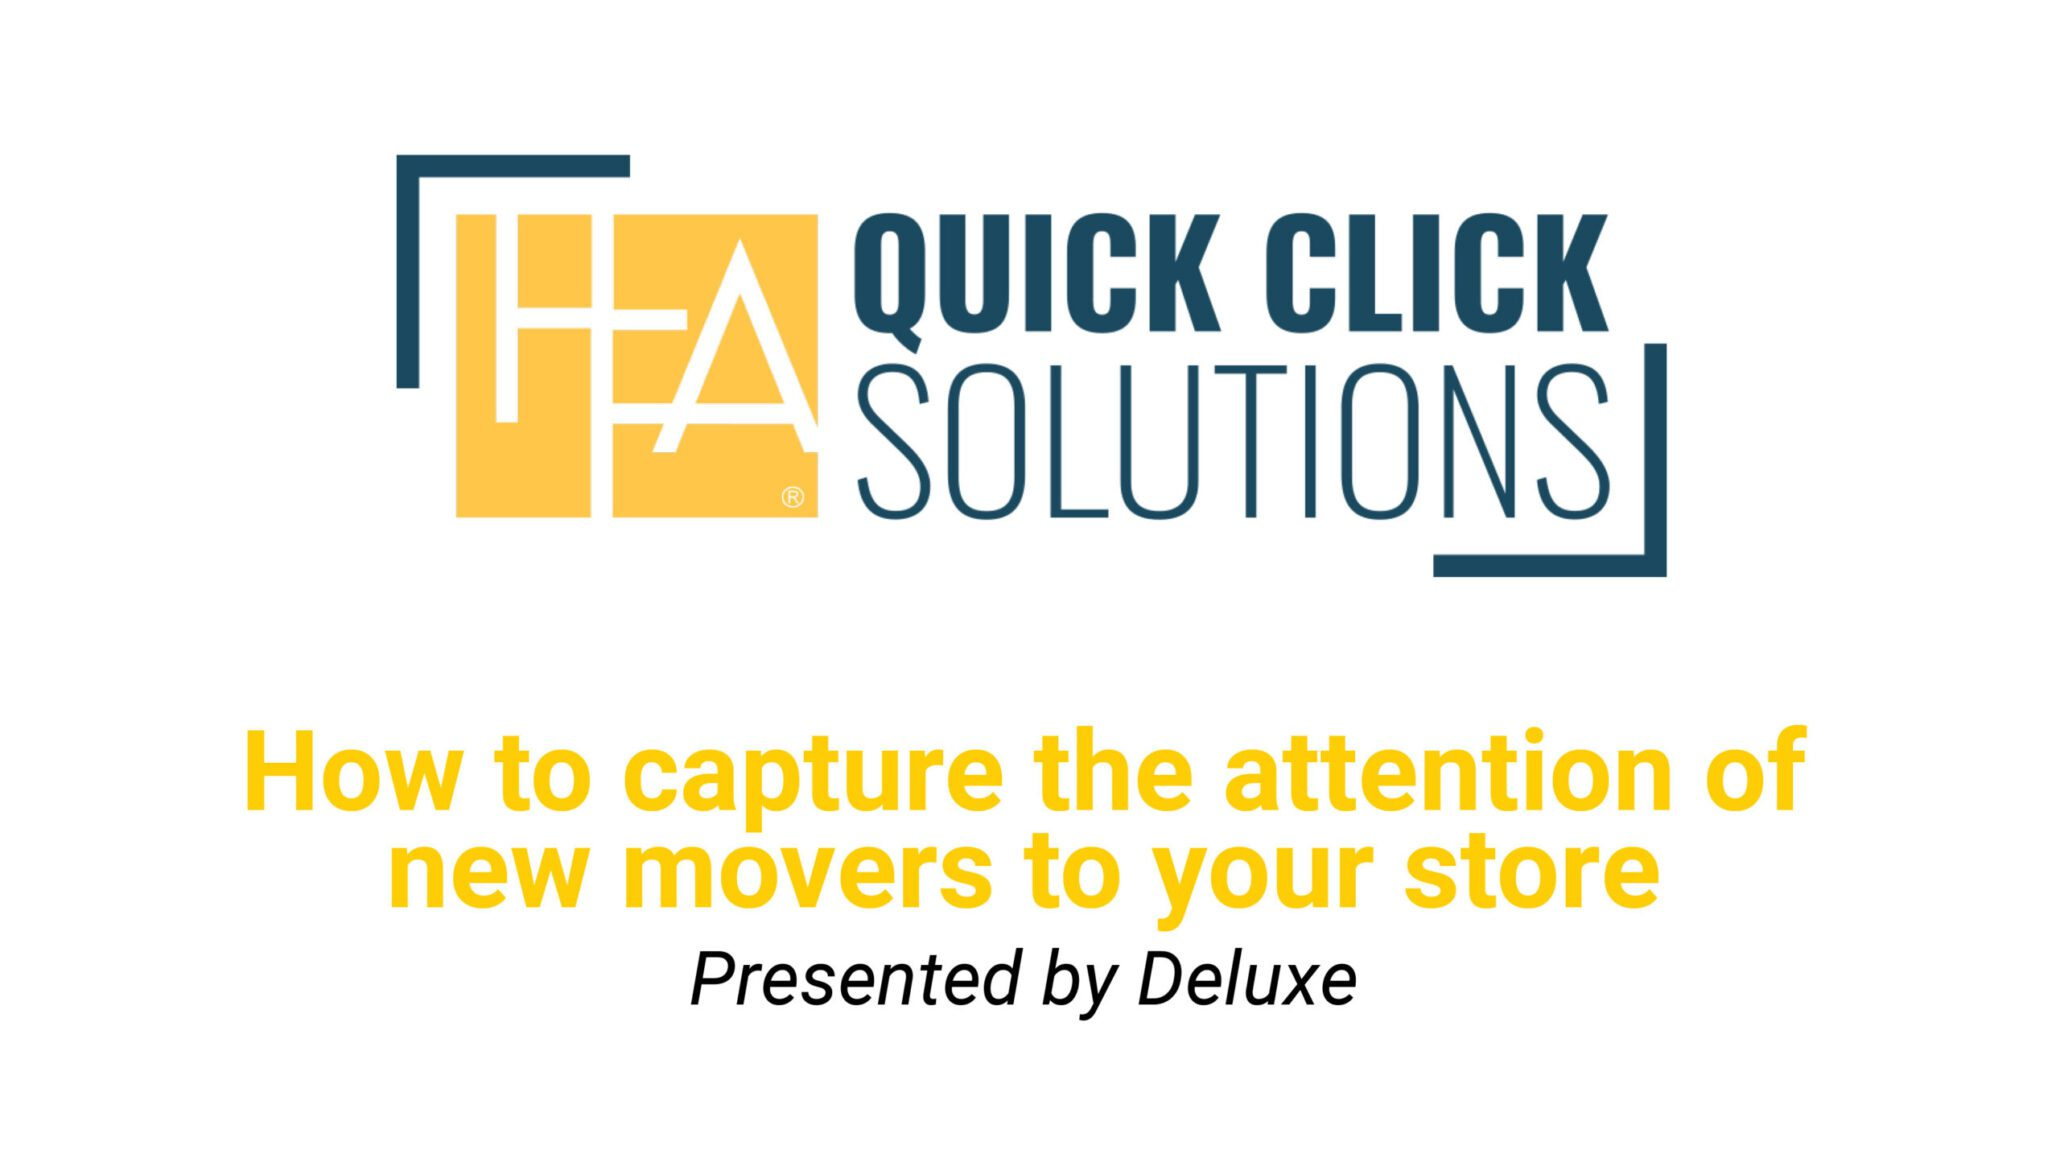 QCS_How to capture the attention of new movers to your store_HFA